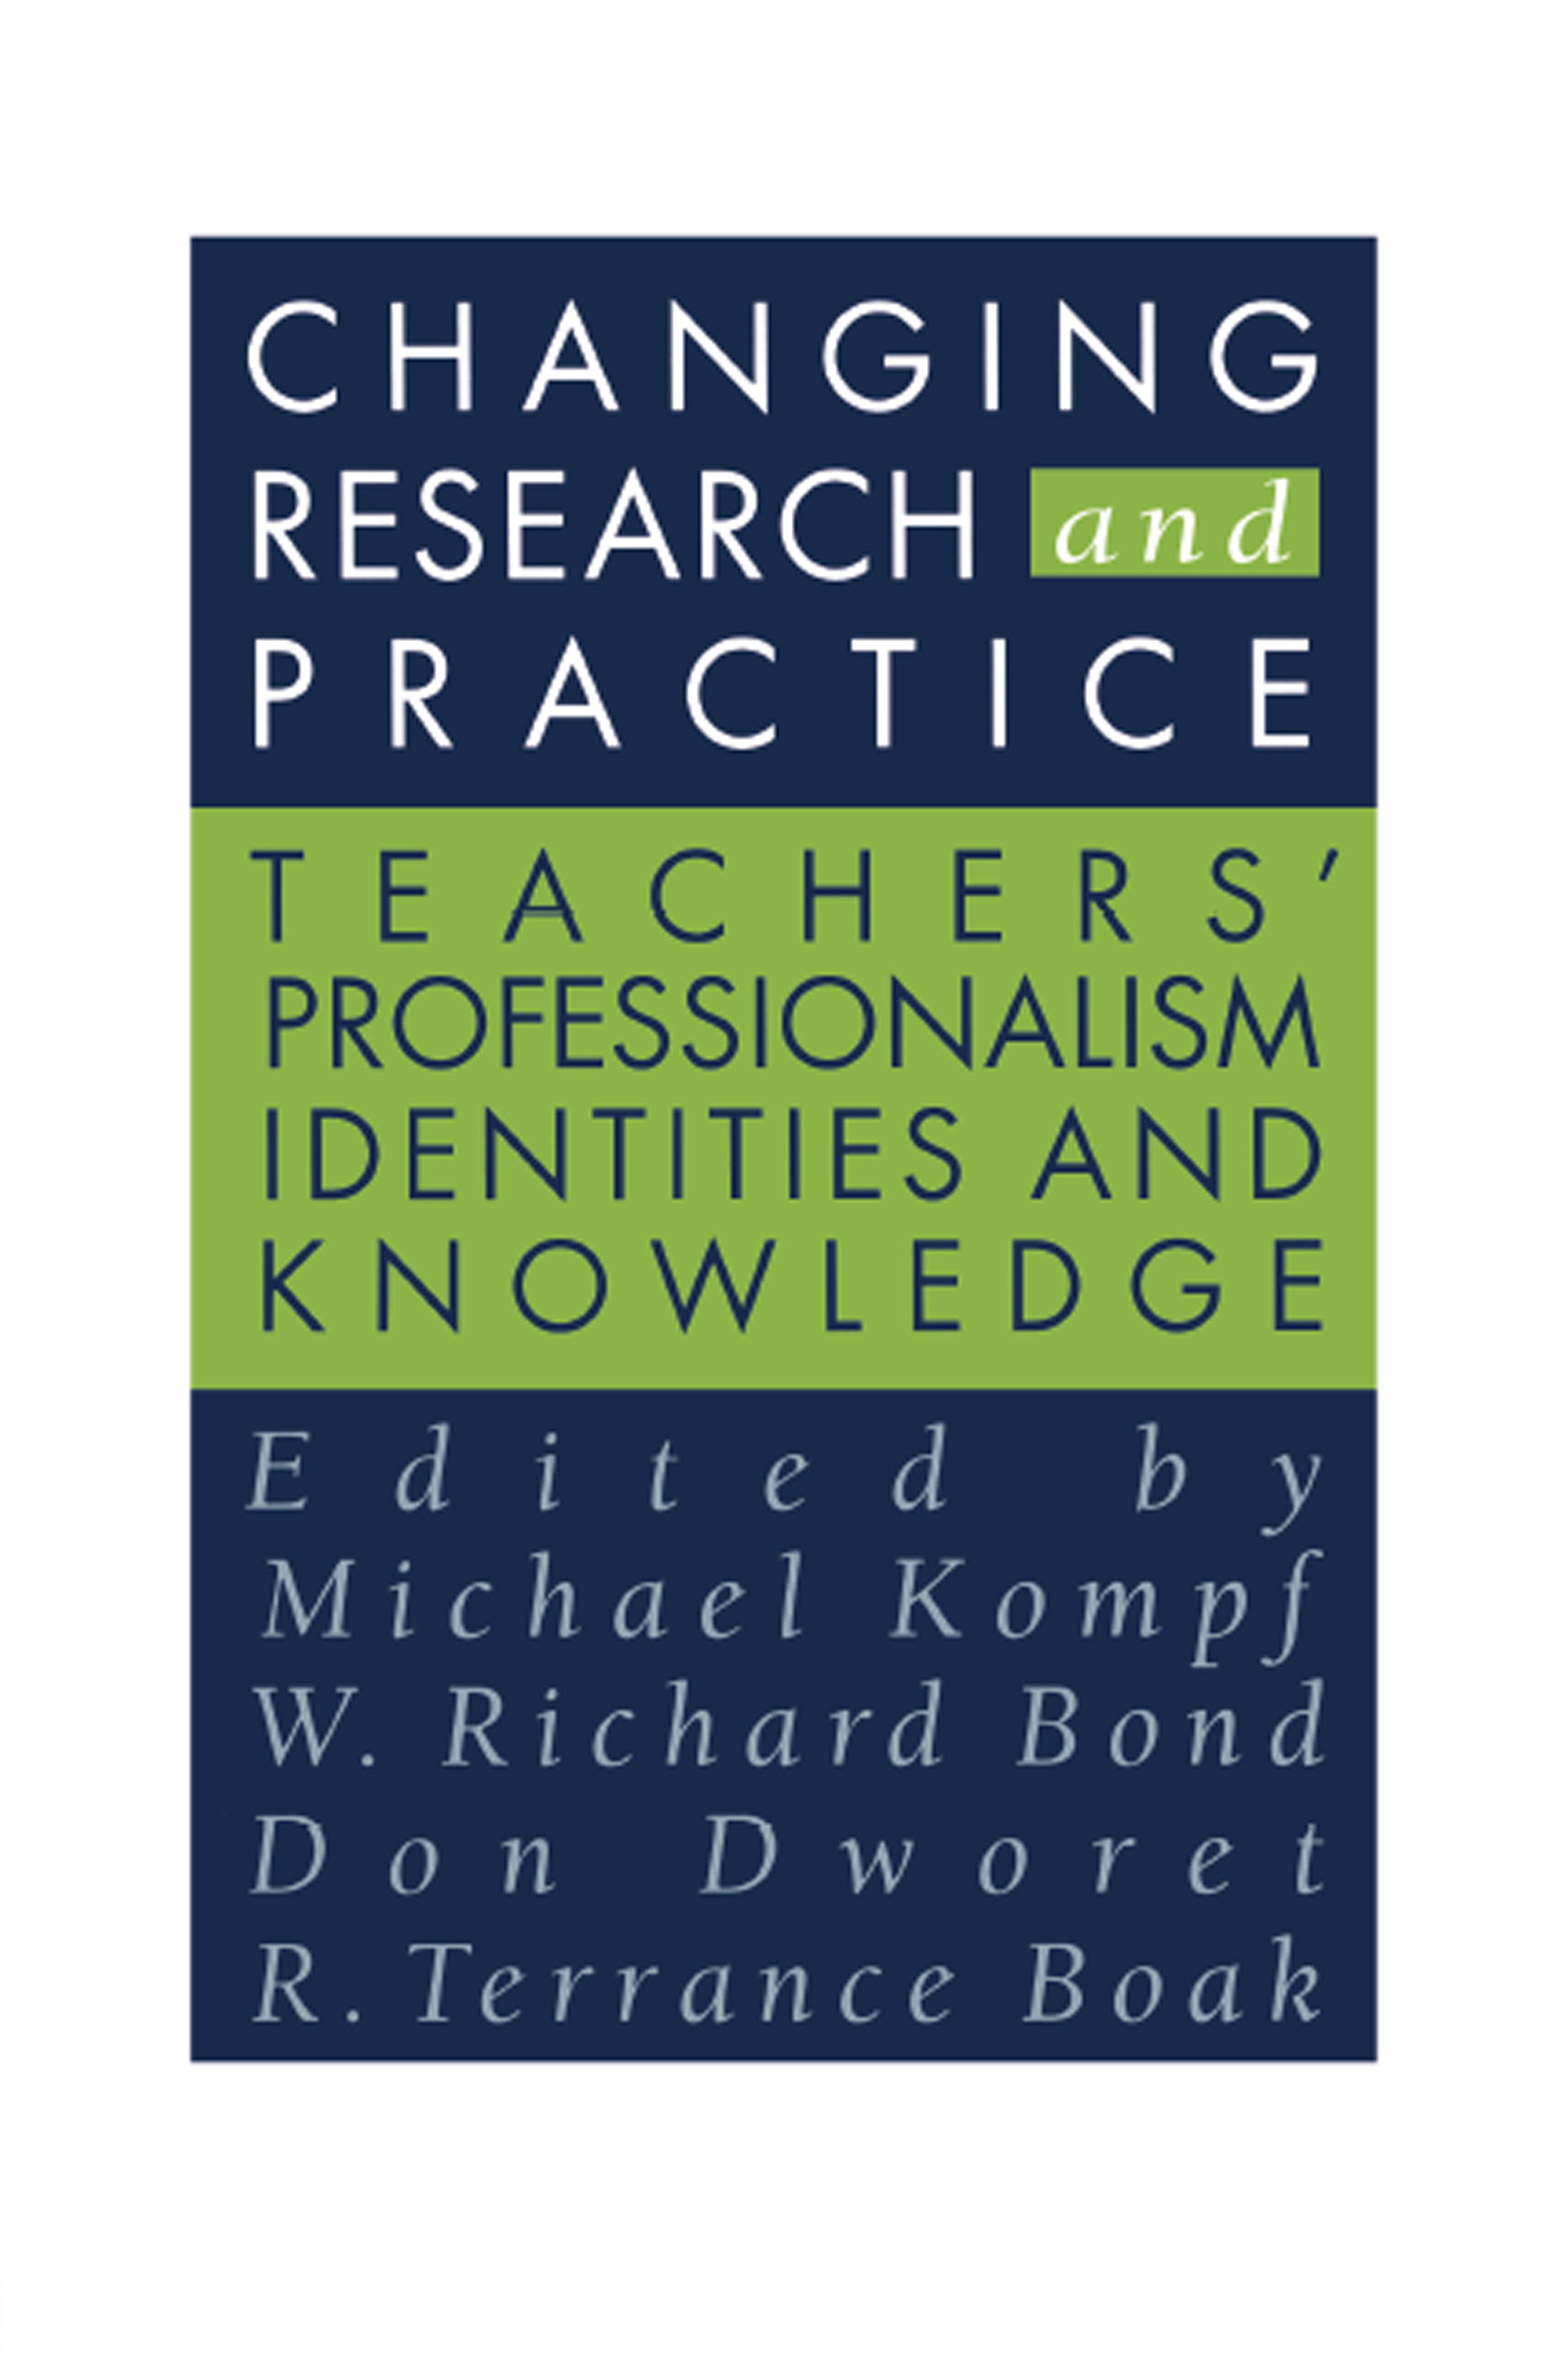 Productively Confronting Dilemmas in Educational Practice and Research